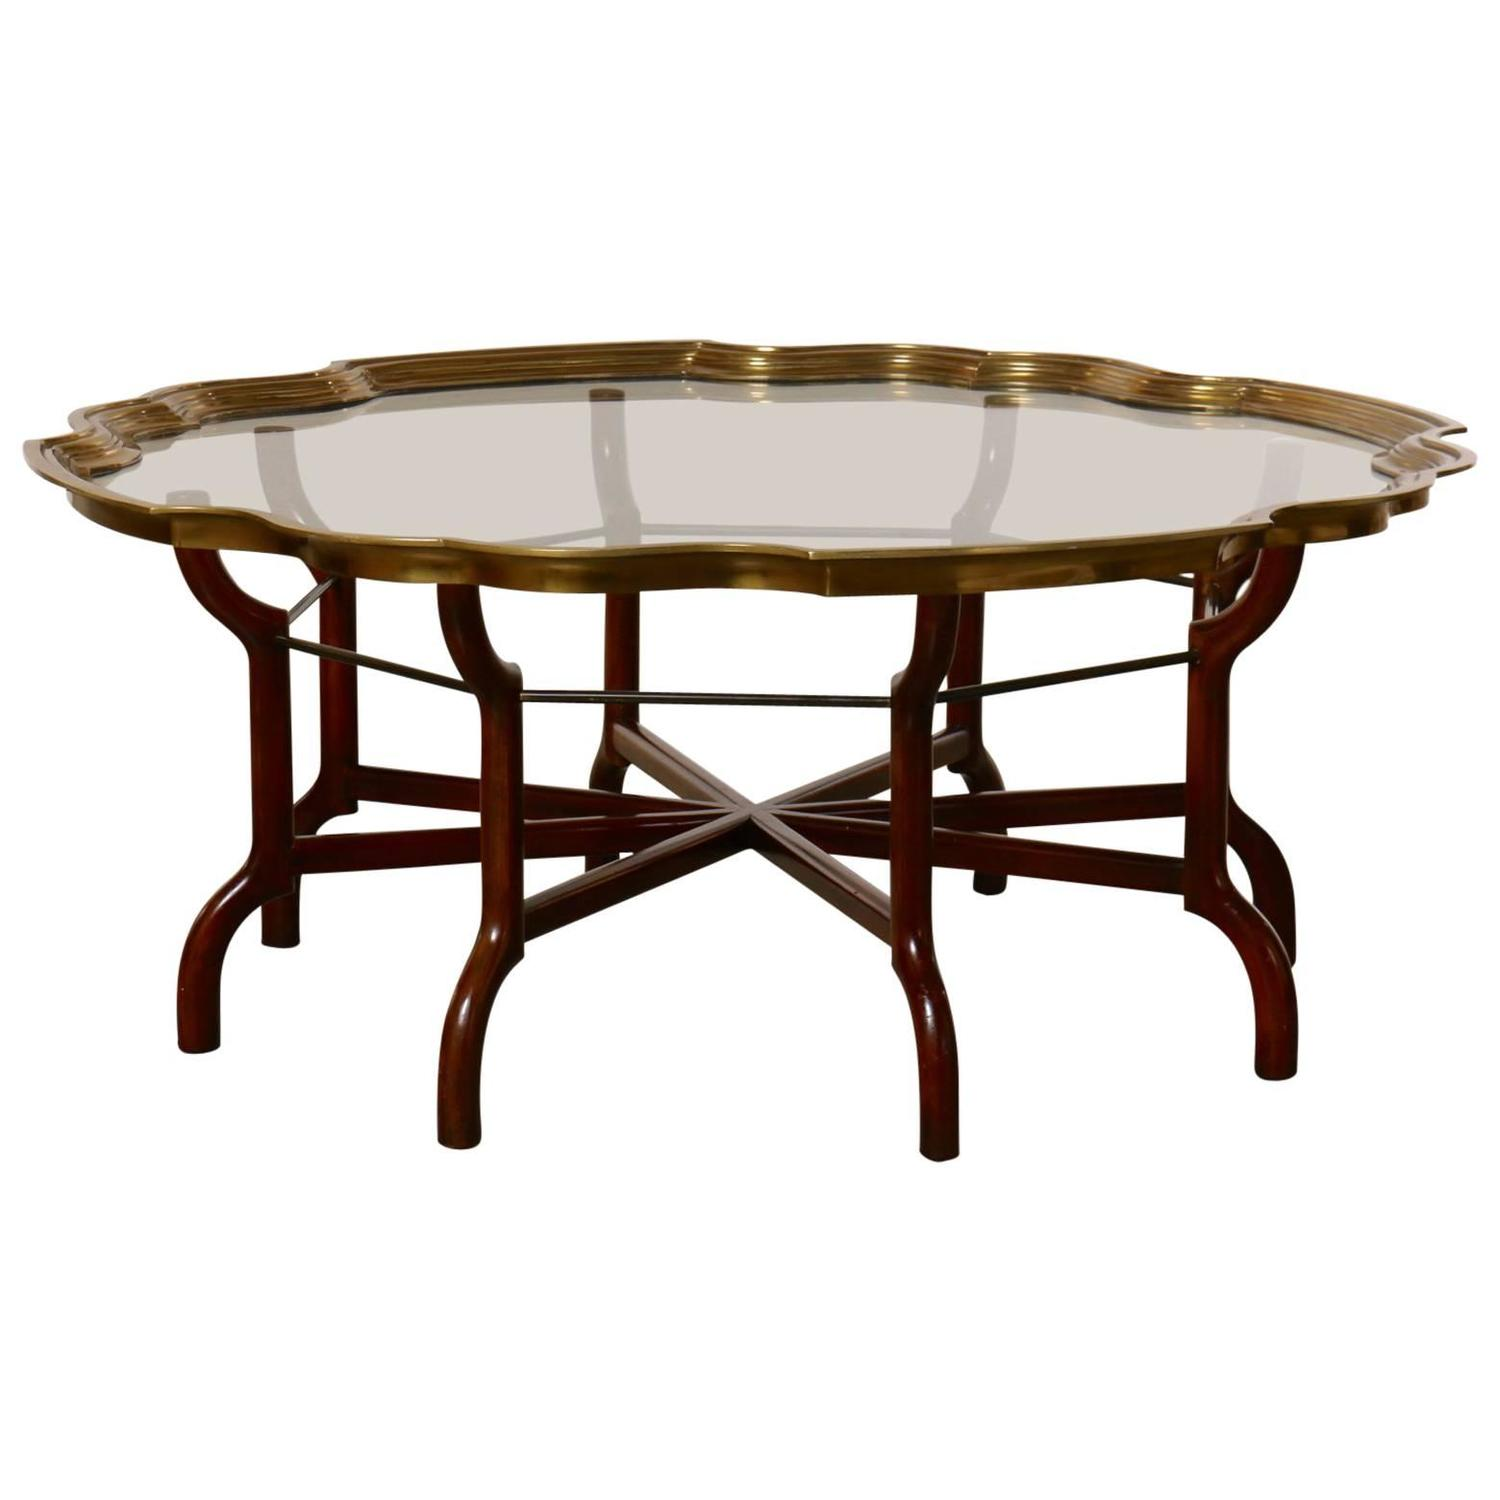 Baker brass and glass round tray top coffee table at 1stdibs Brass round coffee table